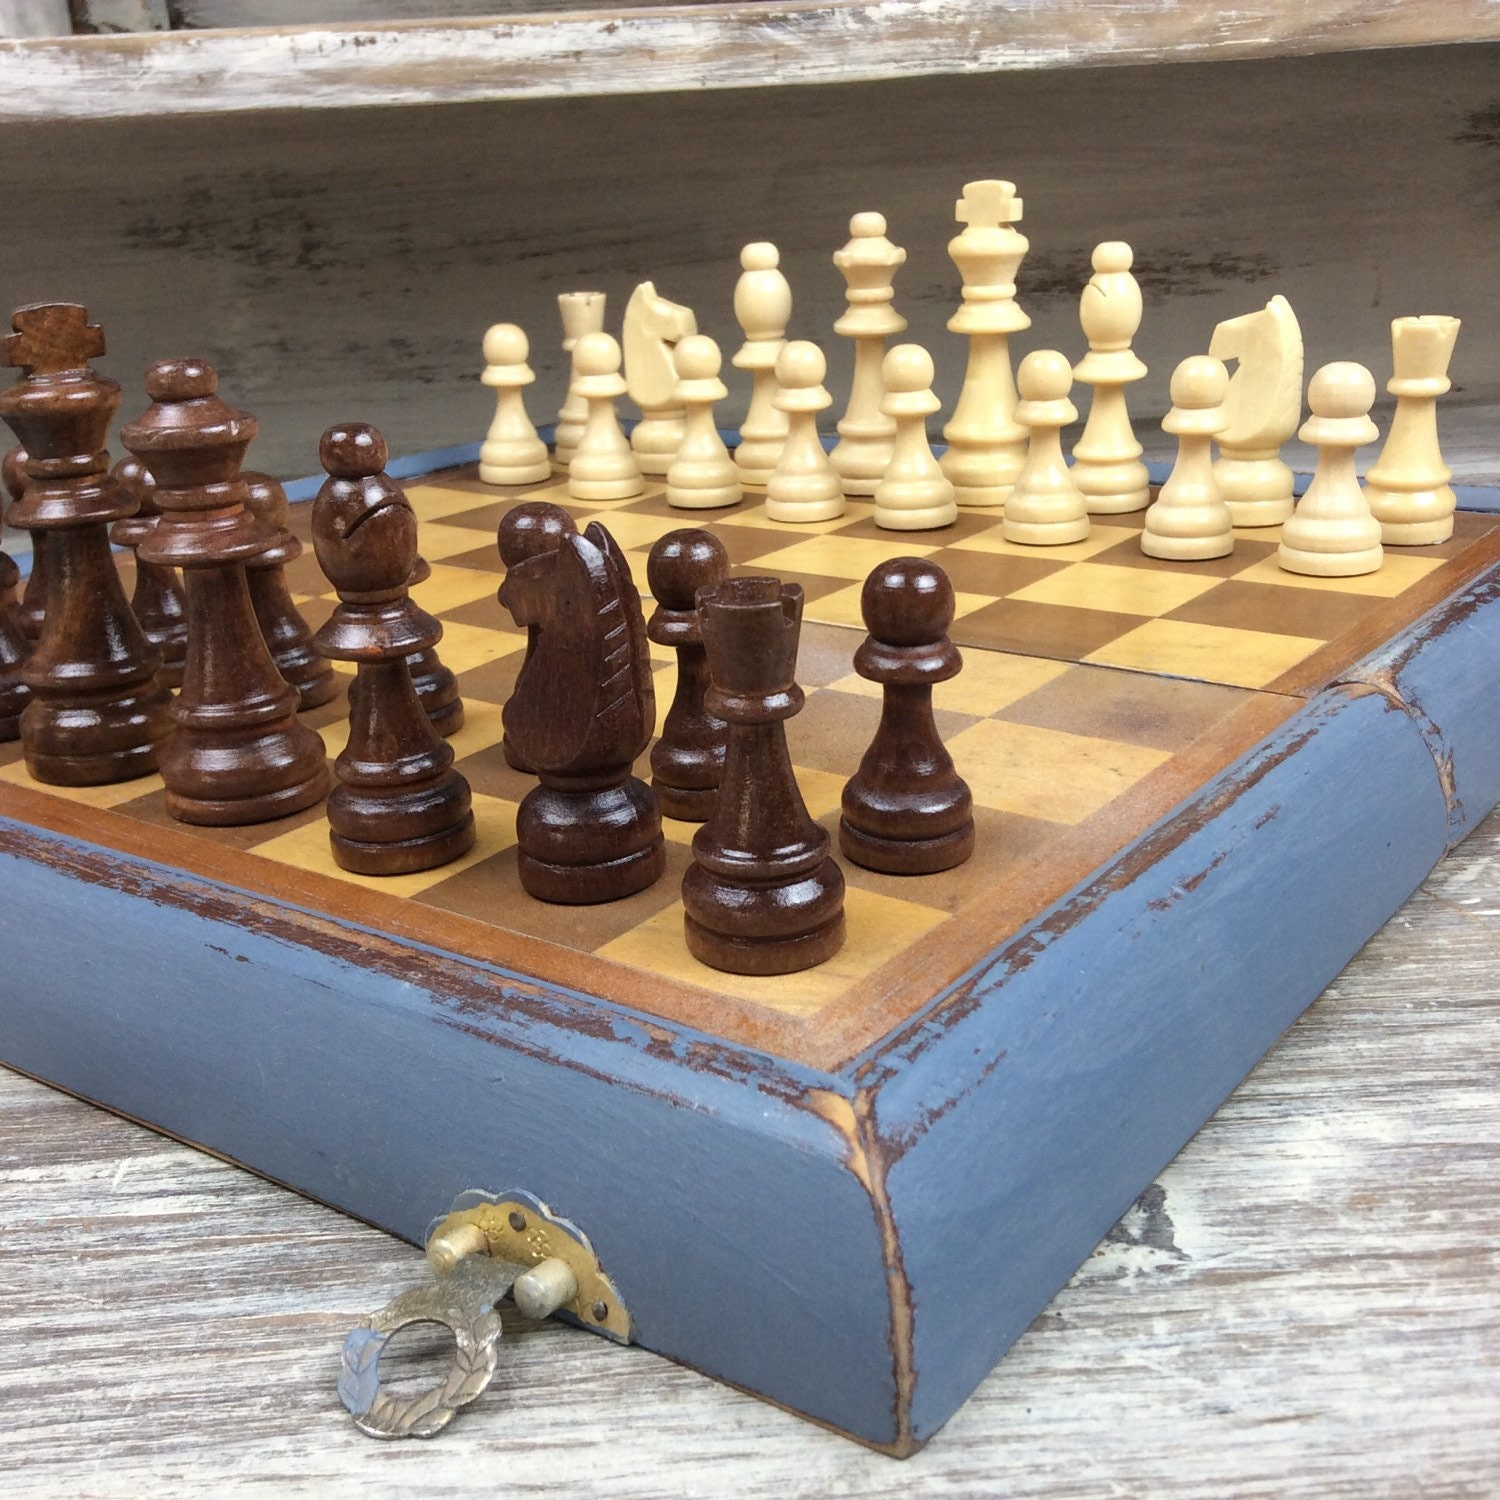 Unique Chess Set Book Style Chess Board With Chess Pieces Wood